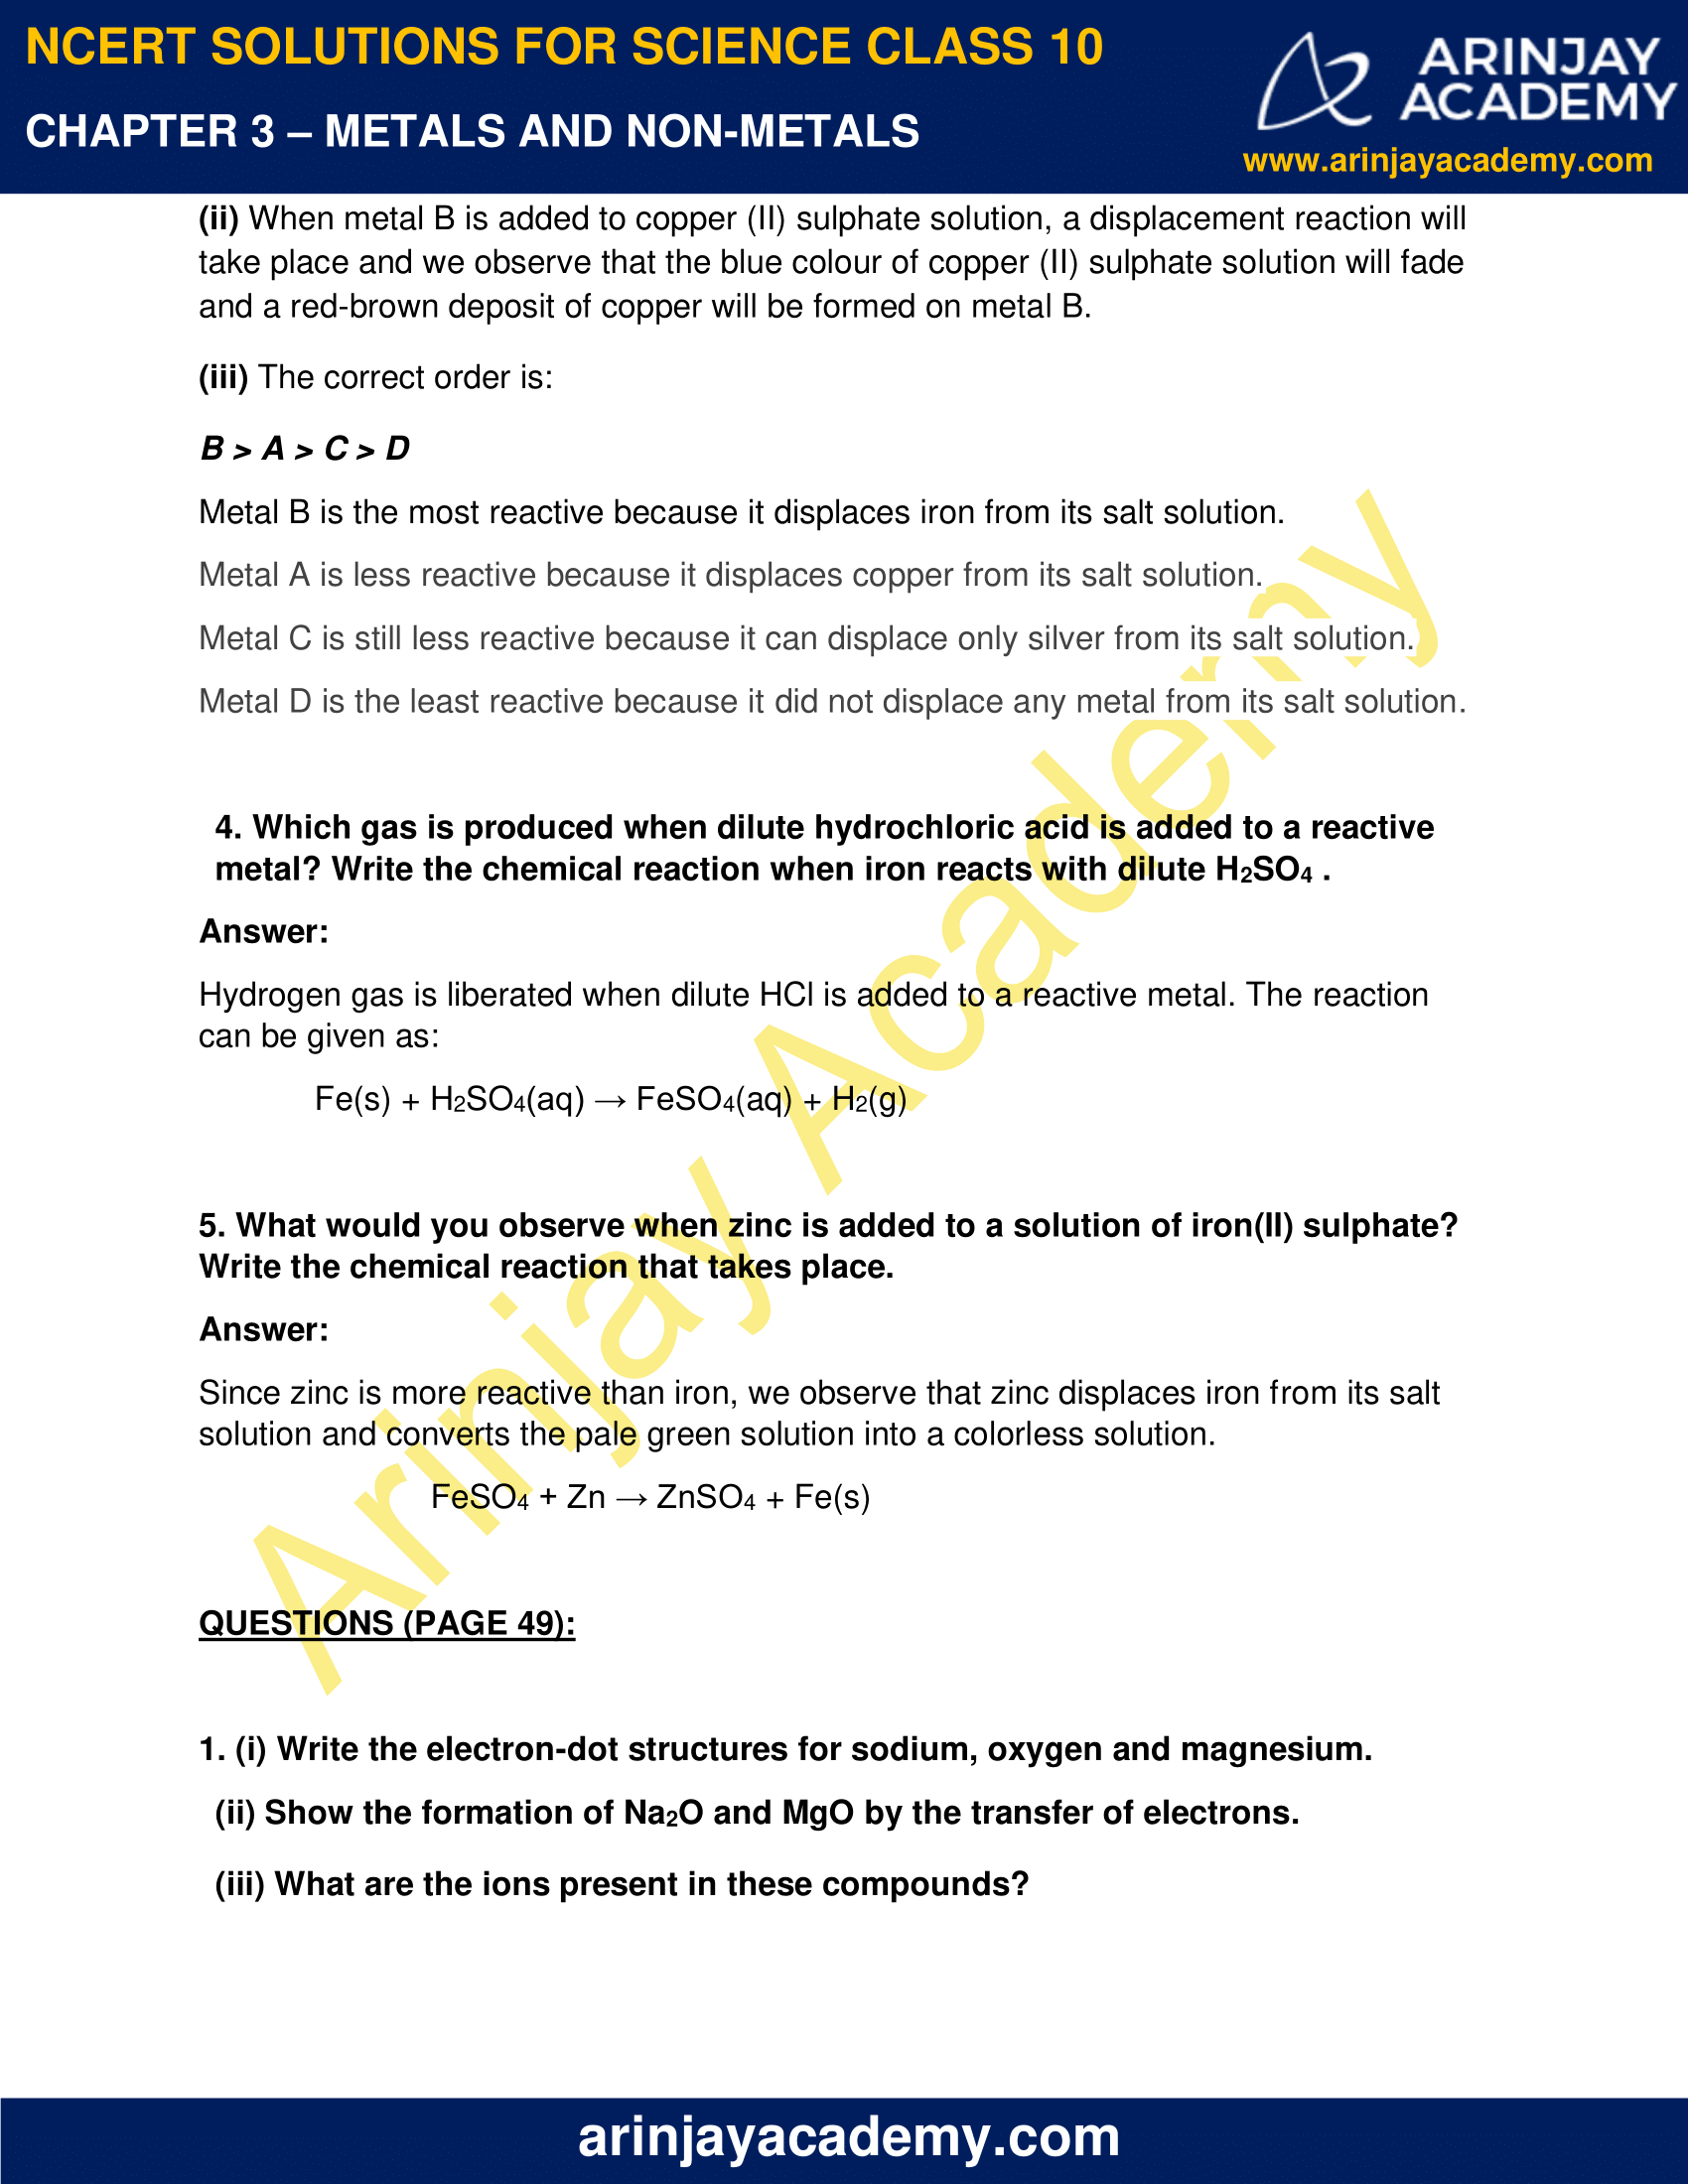 NCERT Solutions for Class 10 Science Chapter 3 image 3